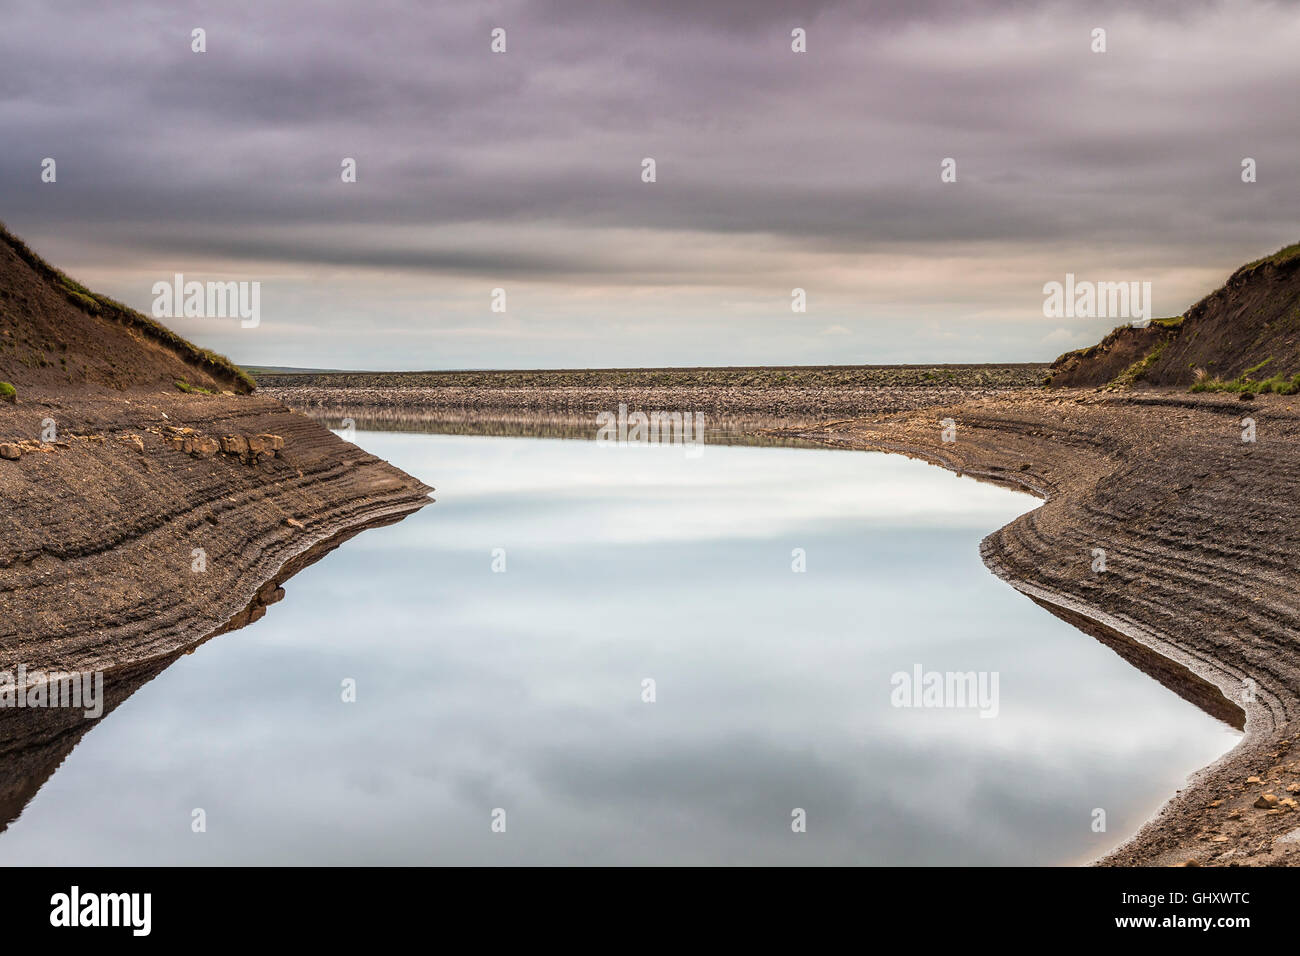 Dry Summer Weather Causing Low Water Levels at Balderhead Reservoir in the North Pennines, Baldersdale, Teesdale, - Stock Image